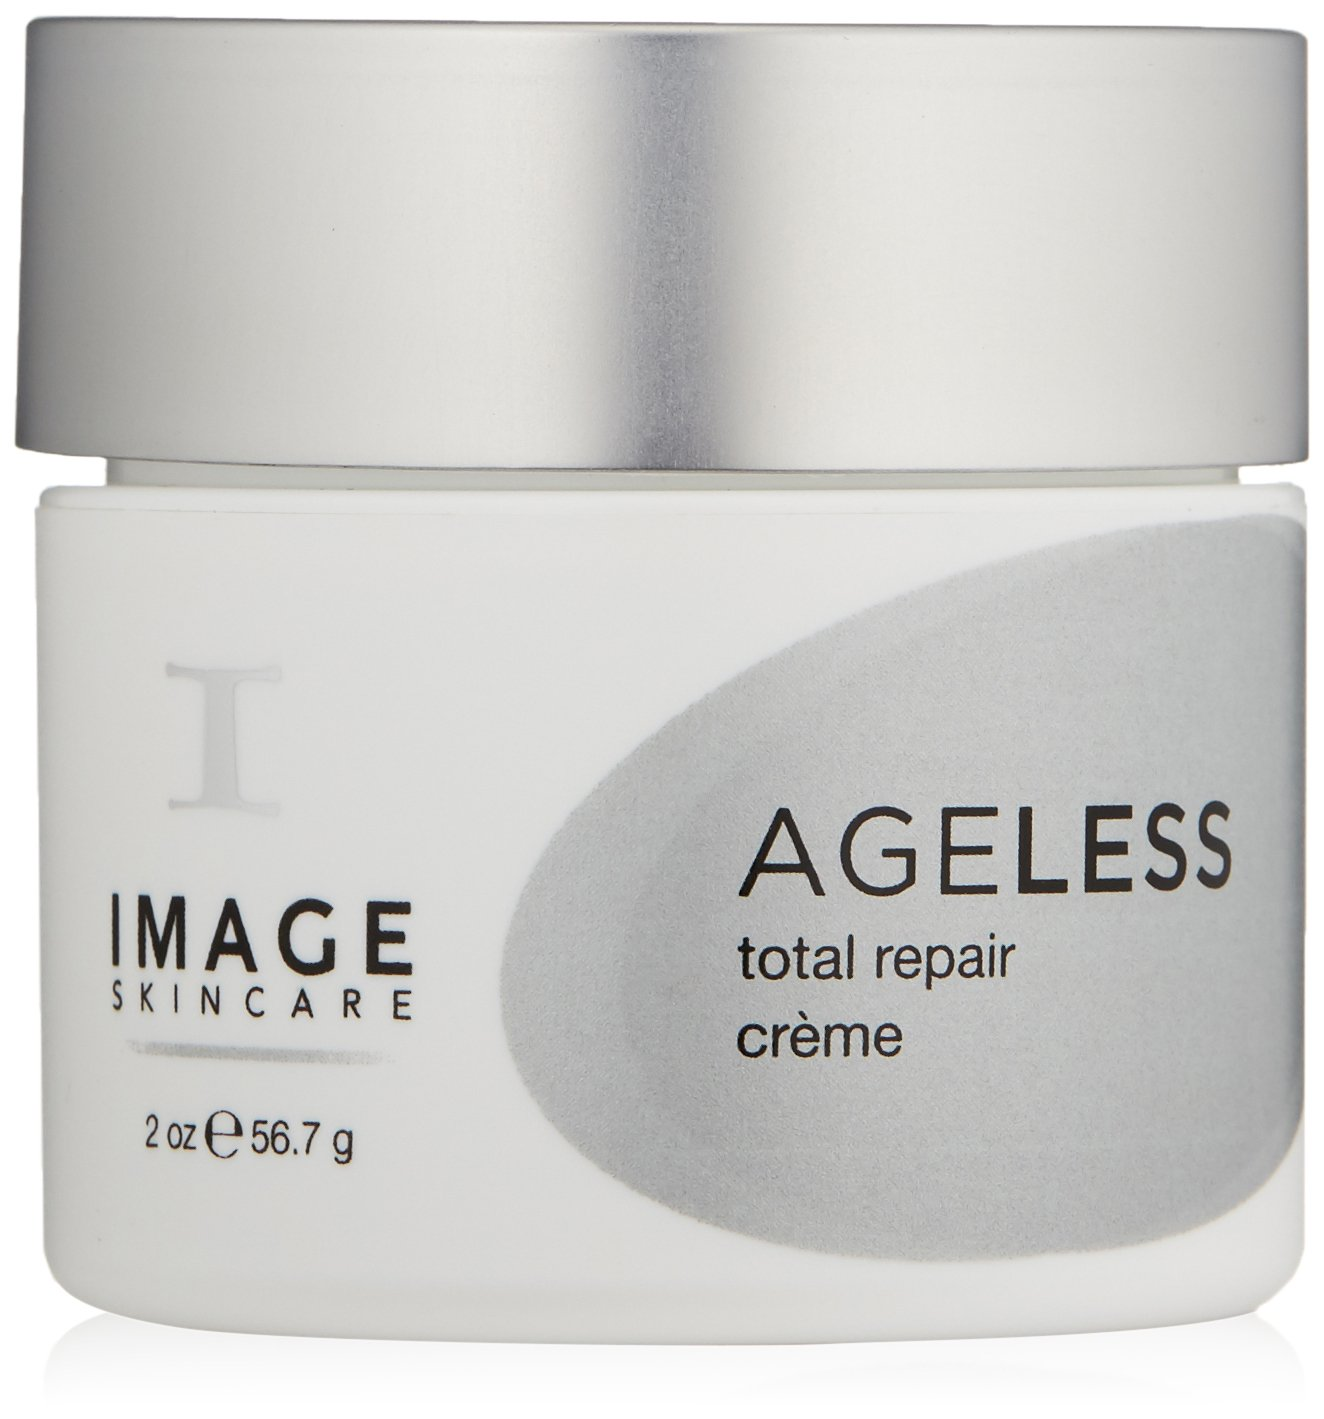 IMAGE Skincare Ageless Total Repair Crème, 2 oz. by IMAGE Skincare (Image #1)